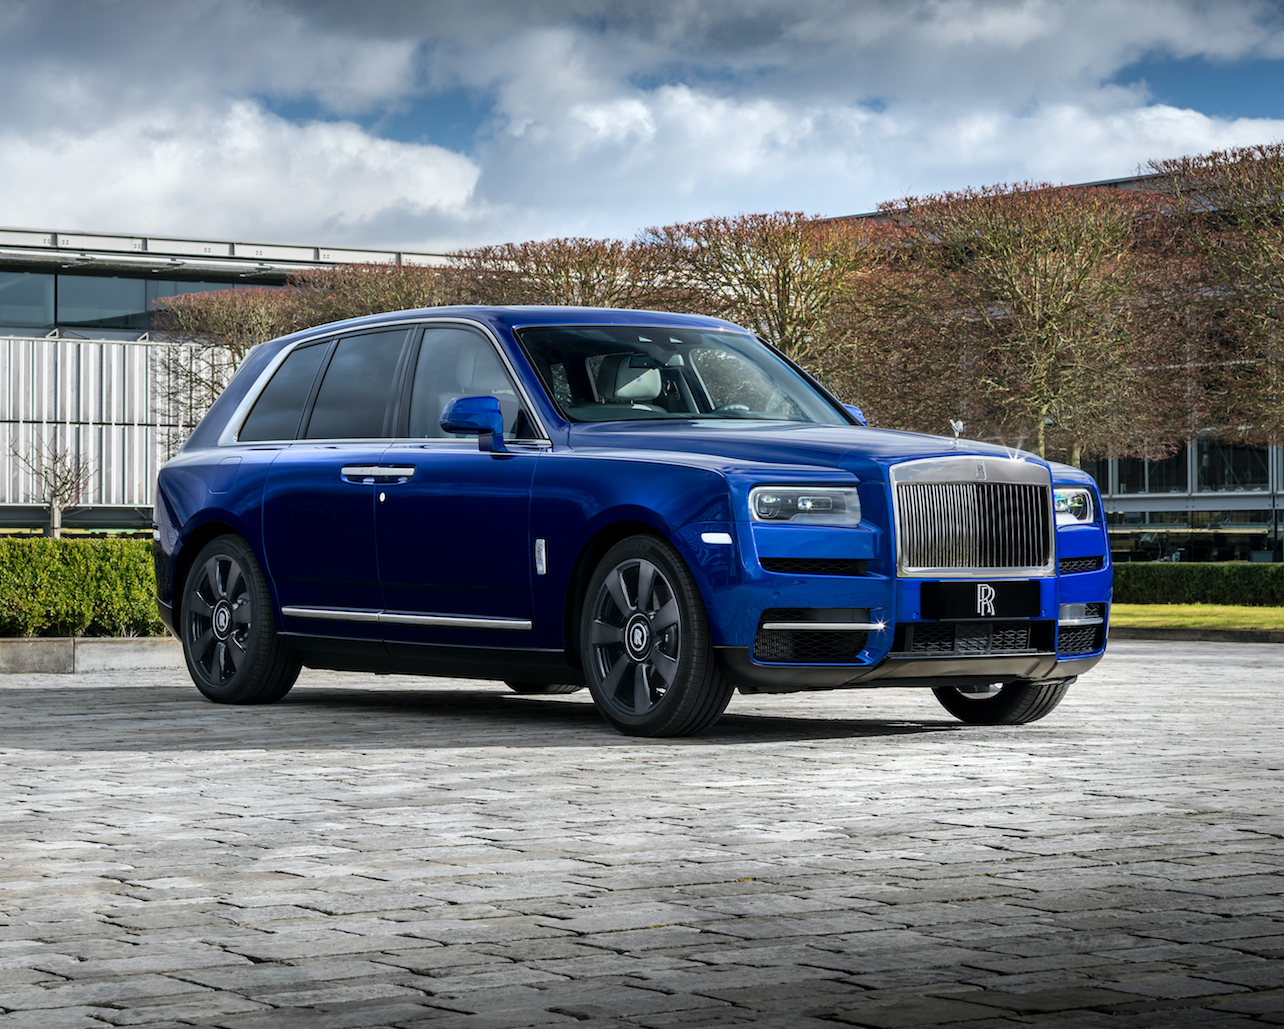 2020 Rolls-Royce Cullinan Review, Pricing, and Specs